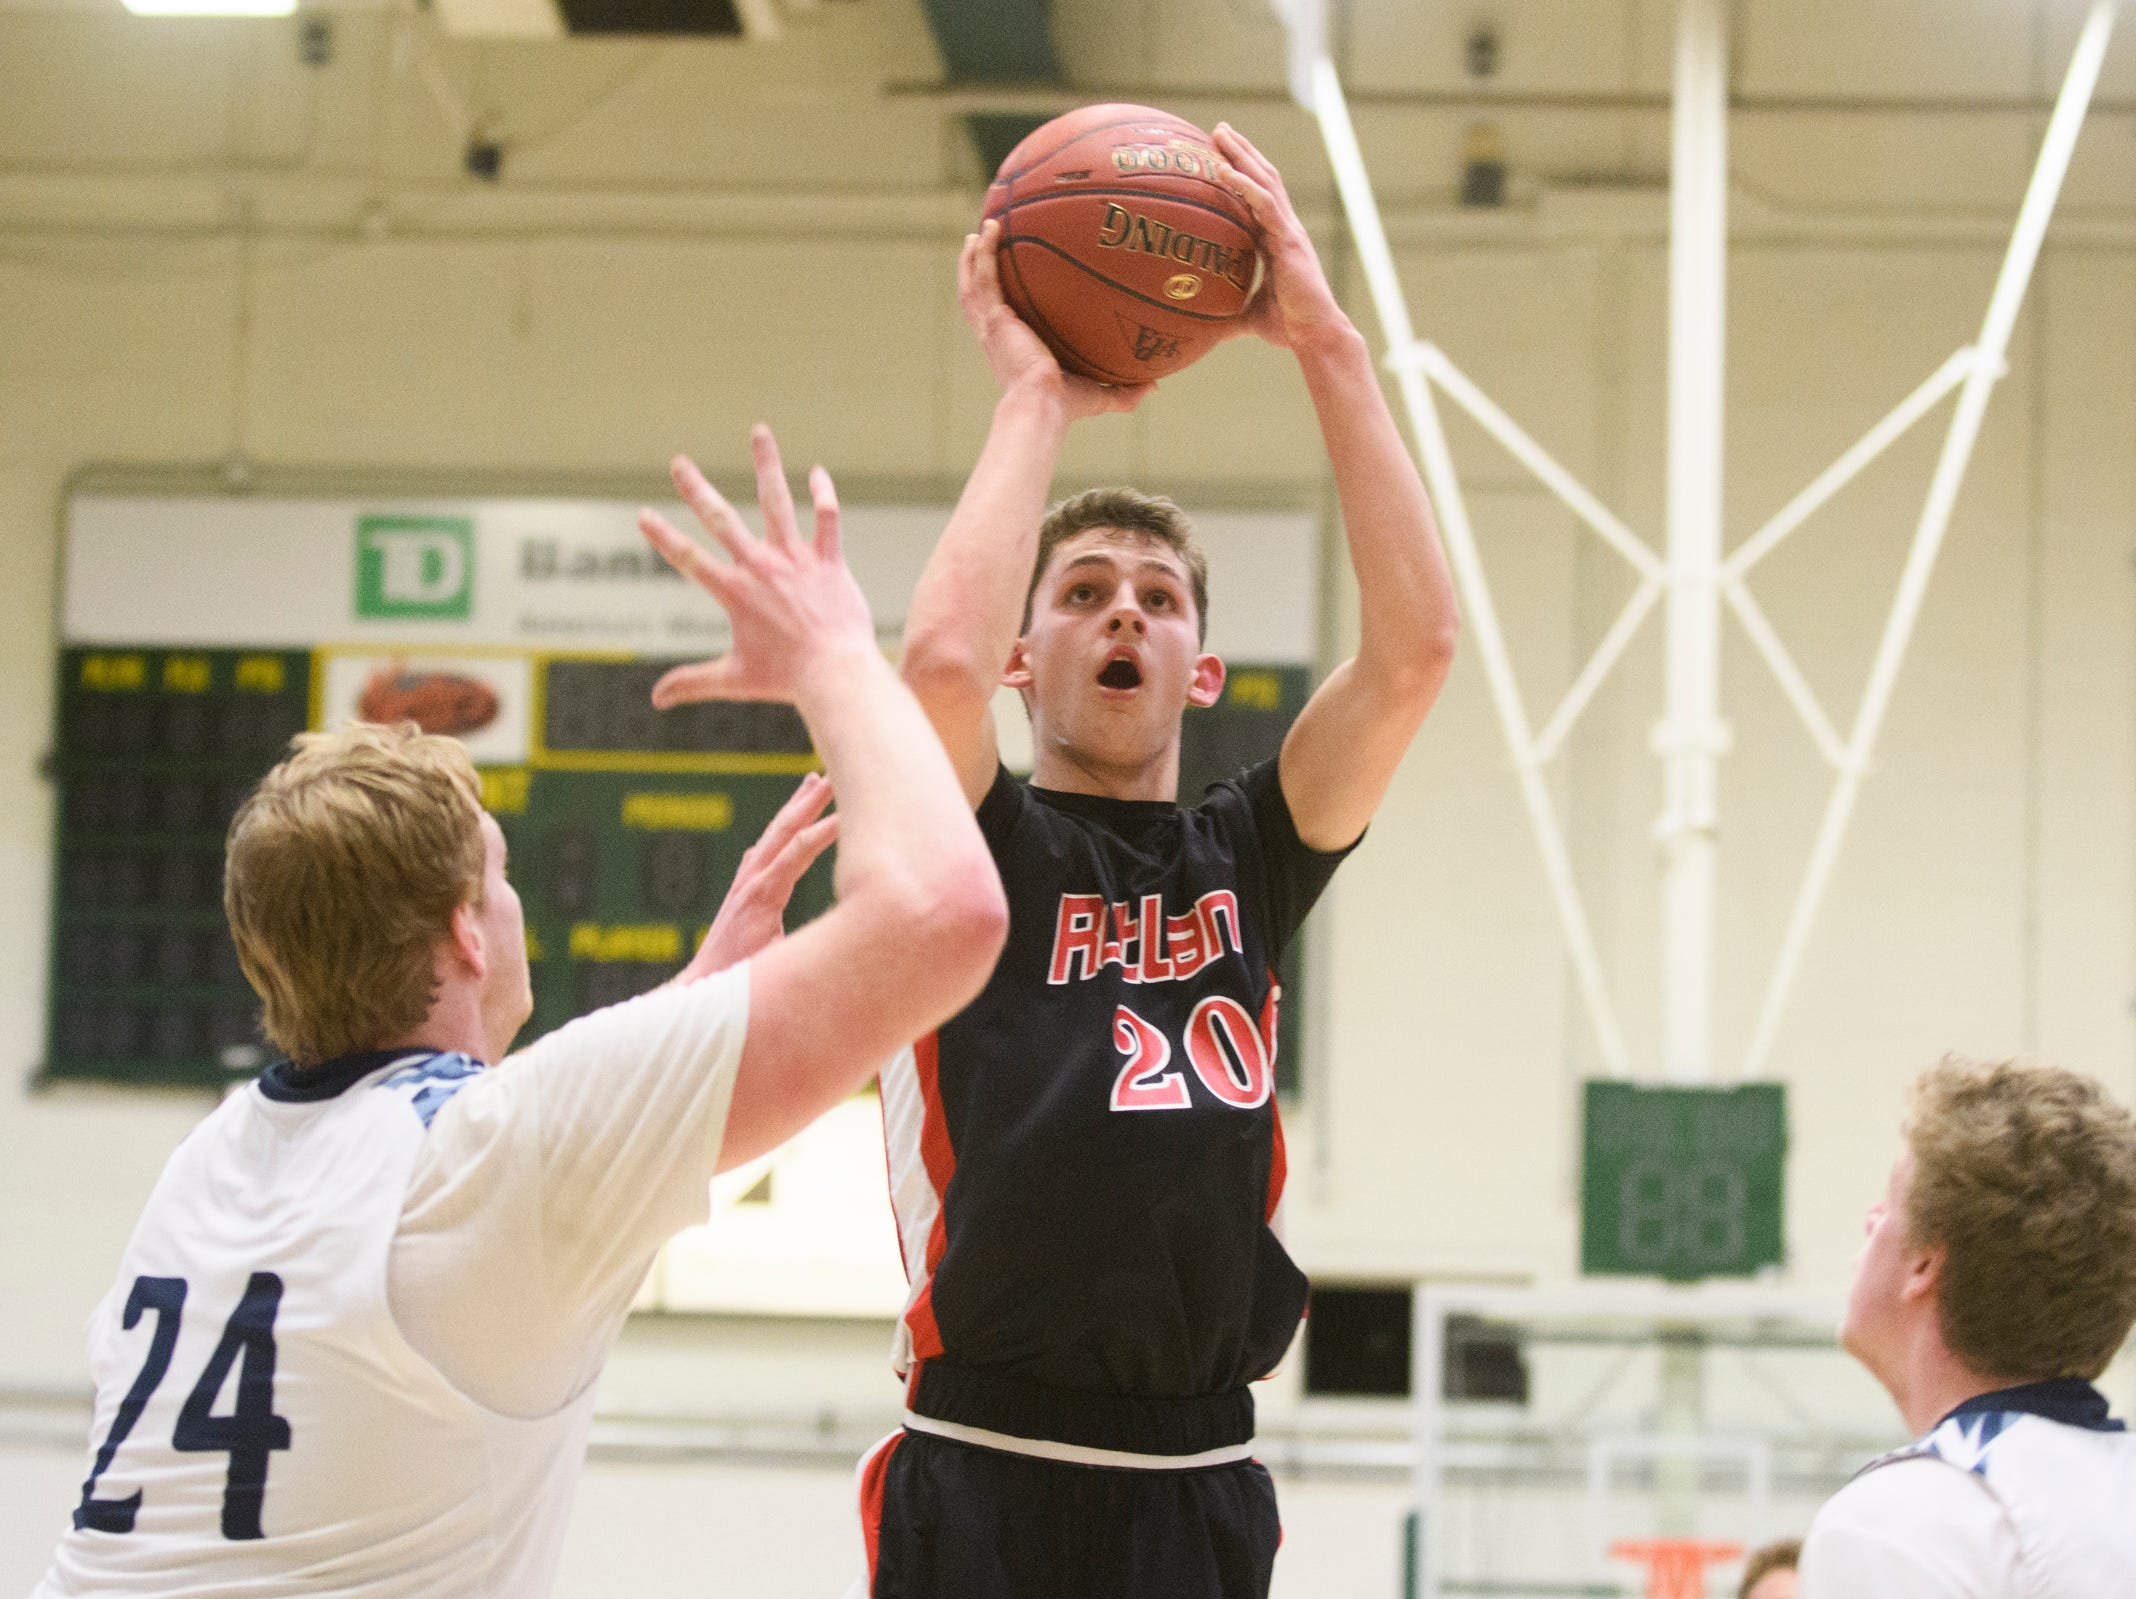 Rutland's Eric Coughlin (20) during the boys DI semi final basketball game between the Rutland Raiders and the Mount Mansfield Cougars at Patrick Gym on Monday night March 11, 2019 in Burlington, Vermont.